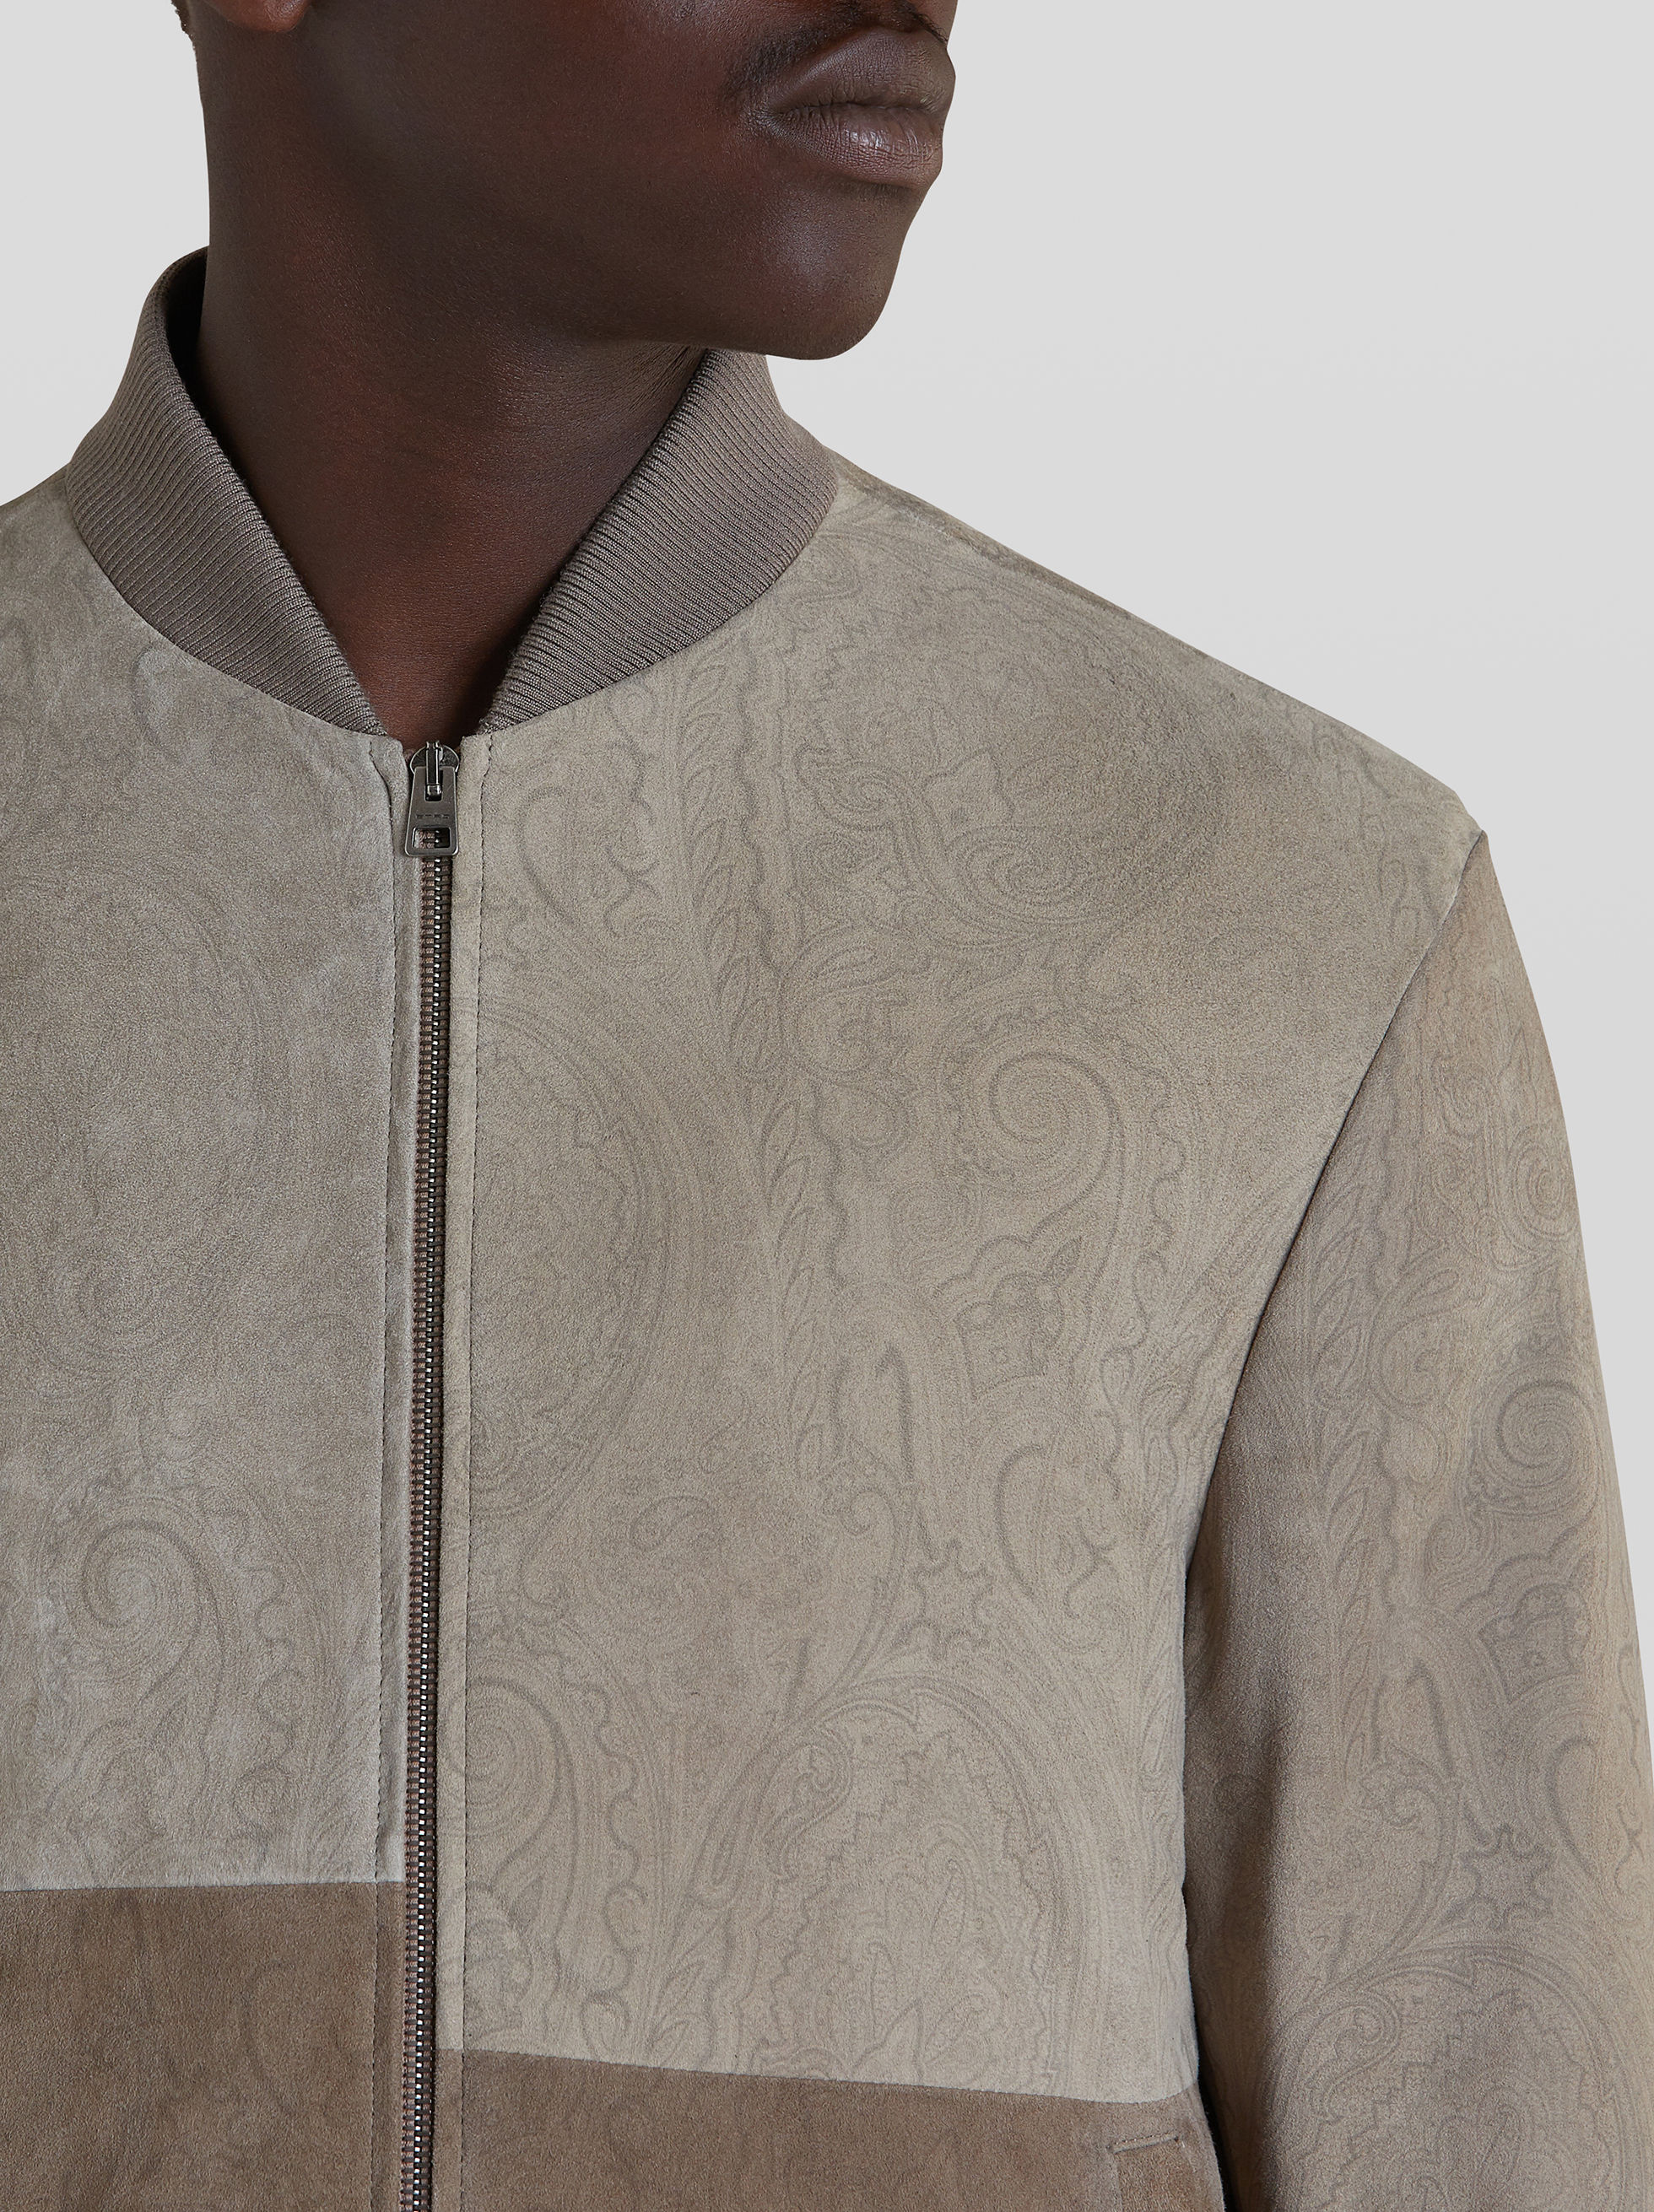 LEATHER BOMBER JACKET INLAID WITH PAISLEY PRINT